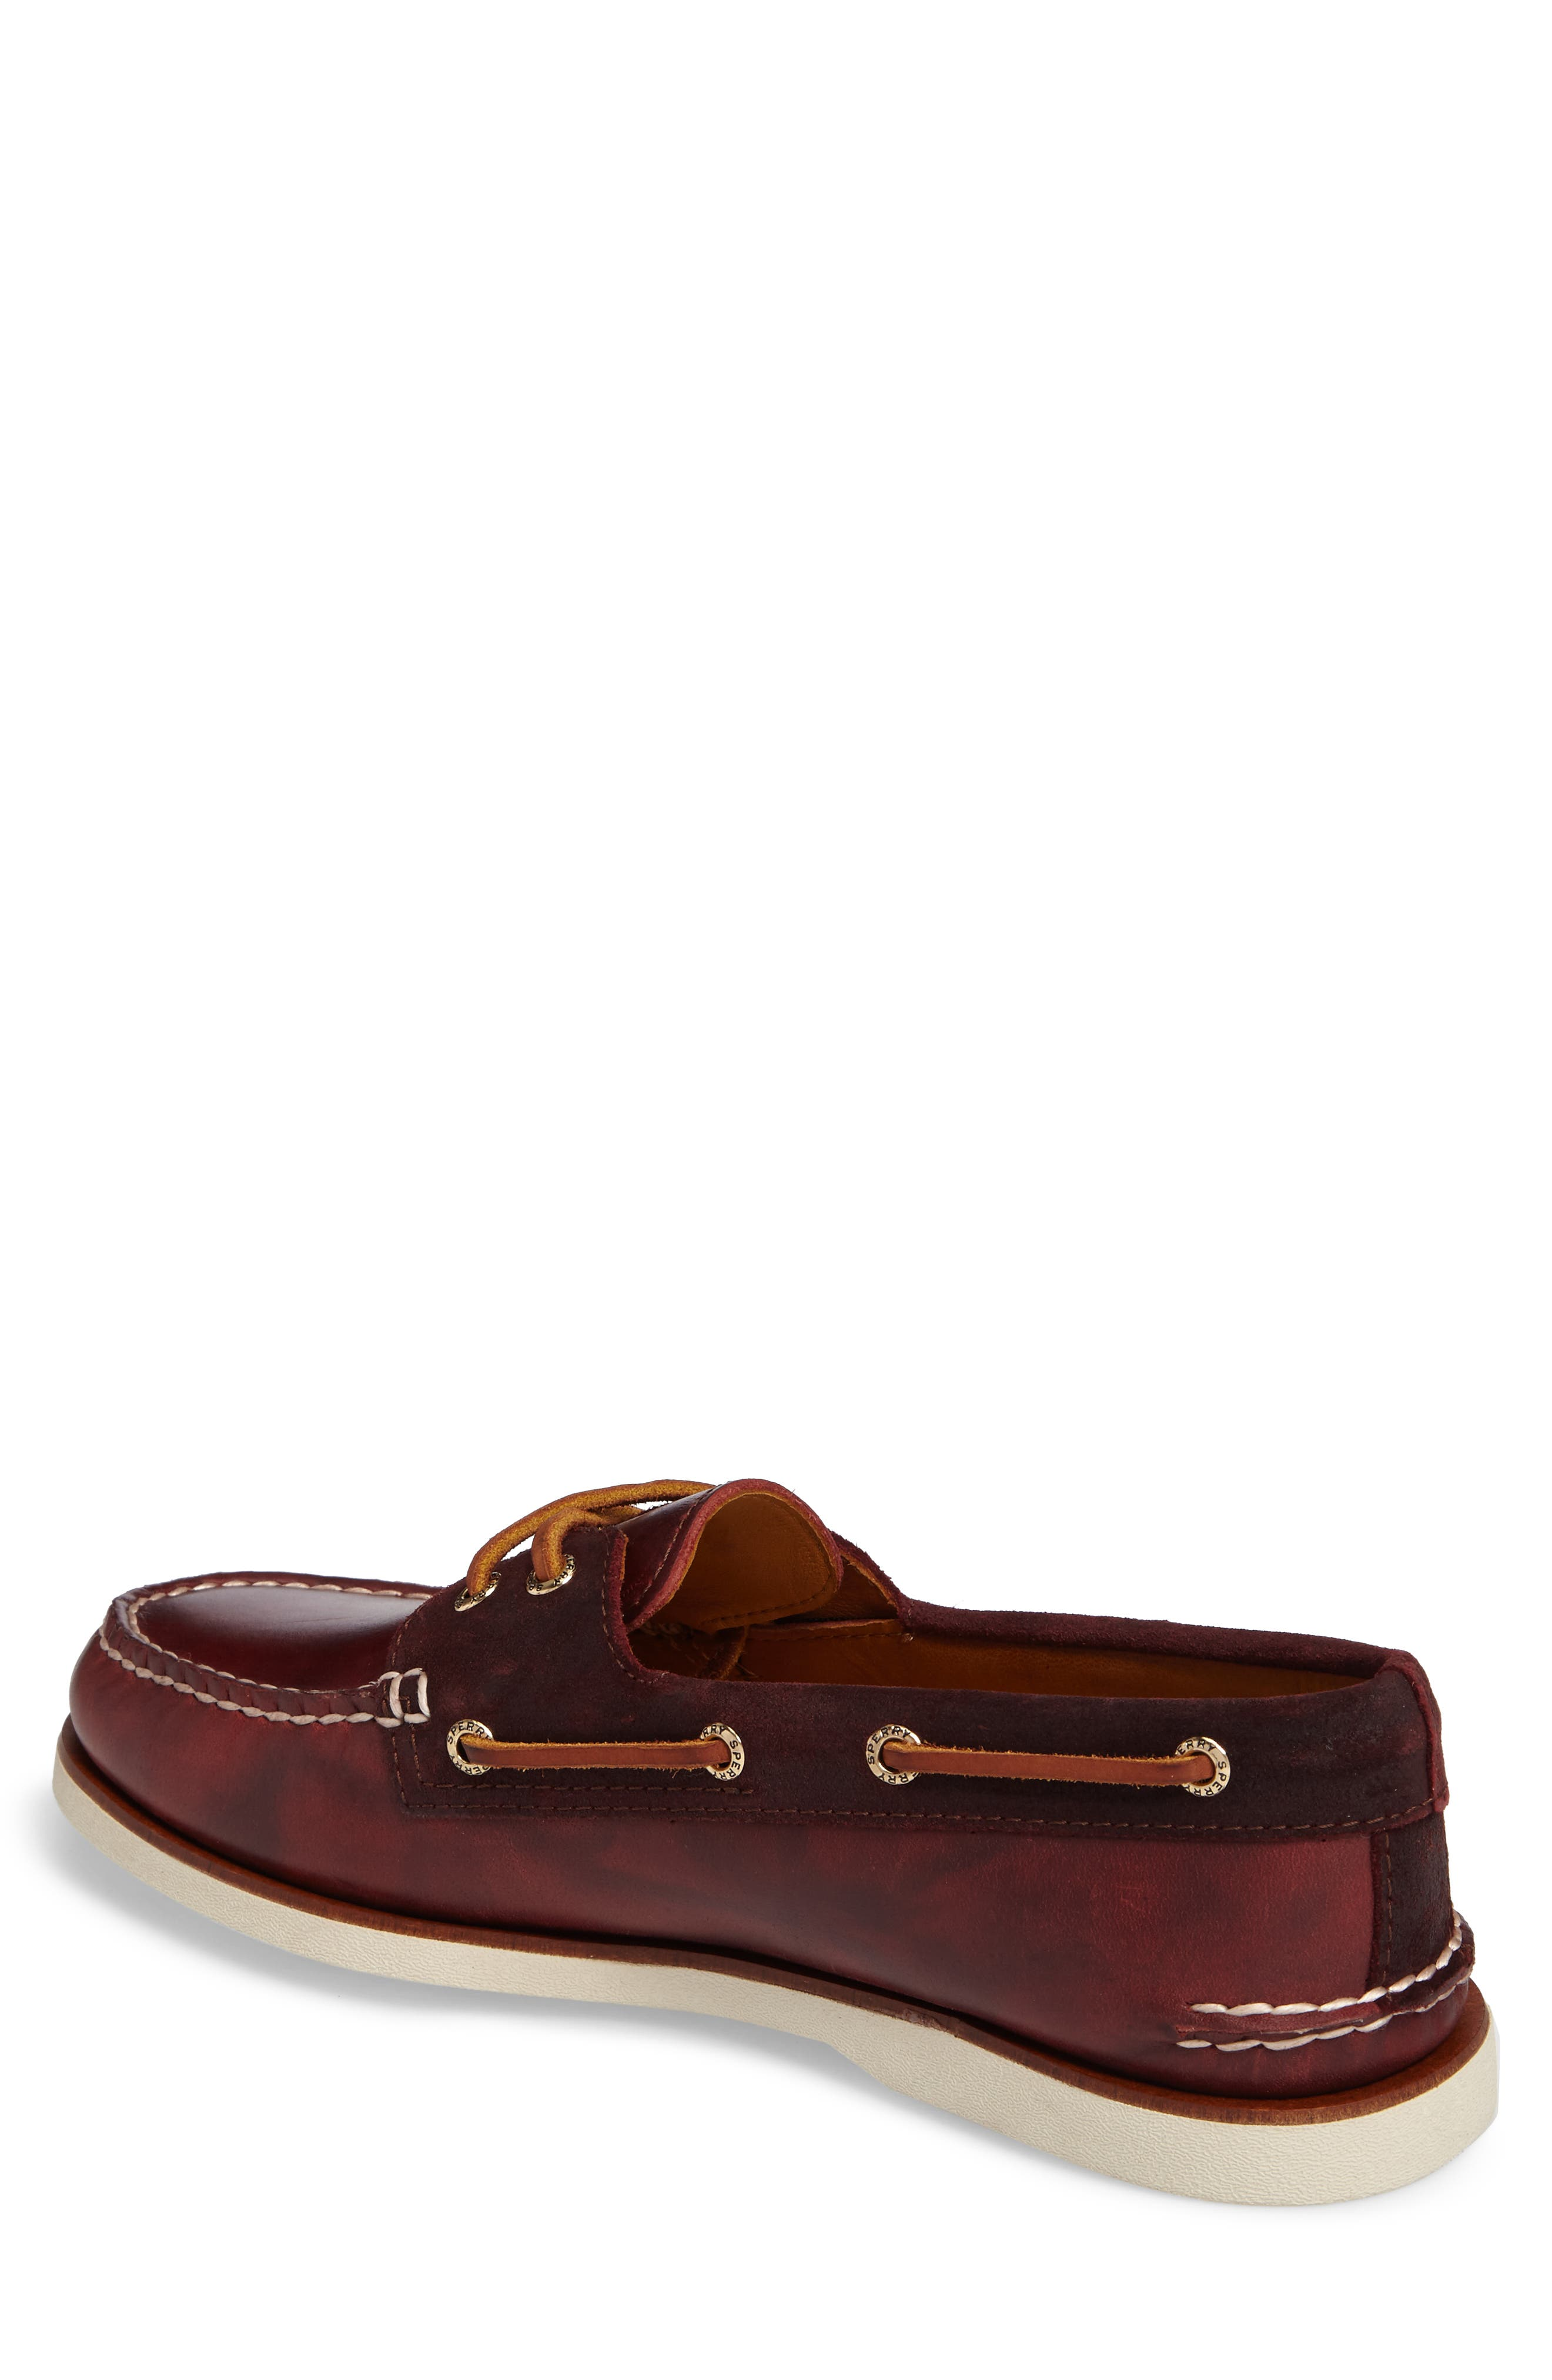 Alternate Image 2  - Sperry Gold Cyclone Boat Shoe (Men)